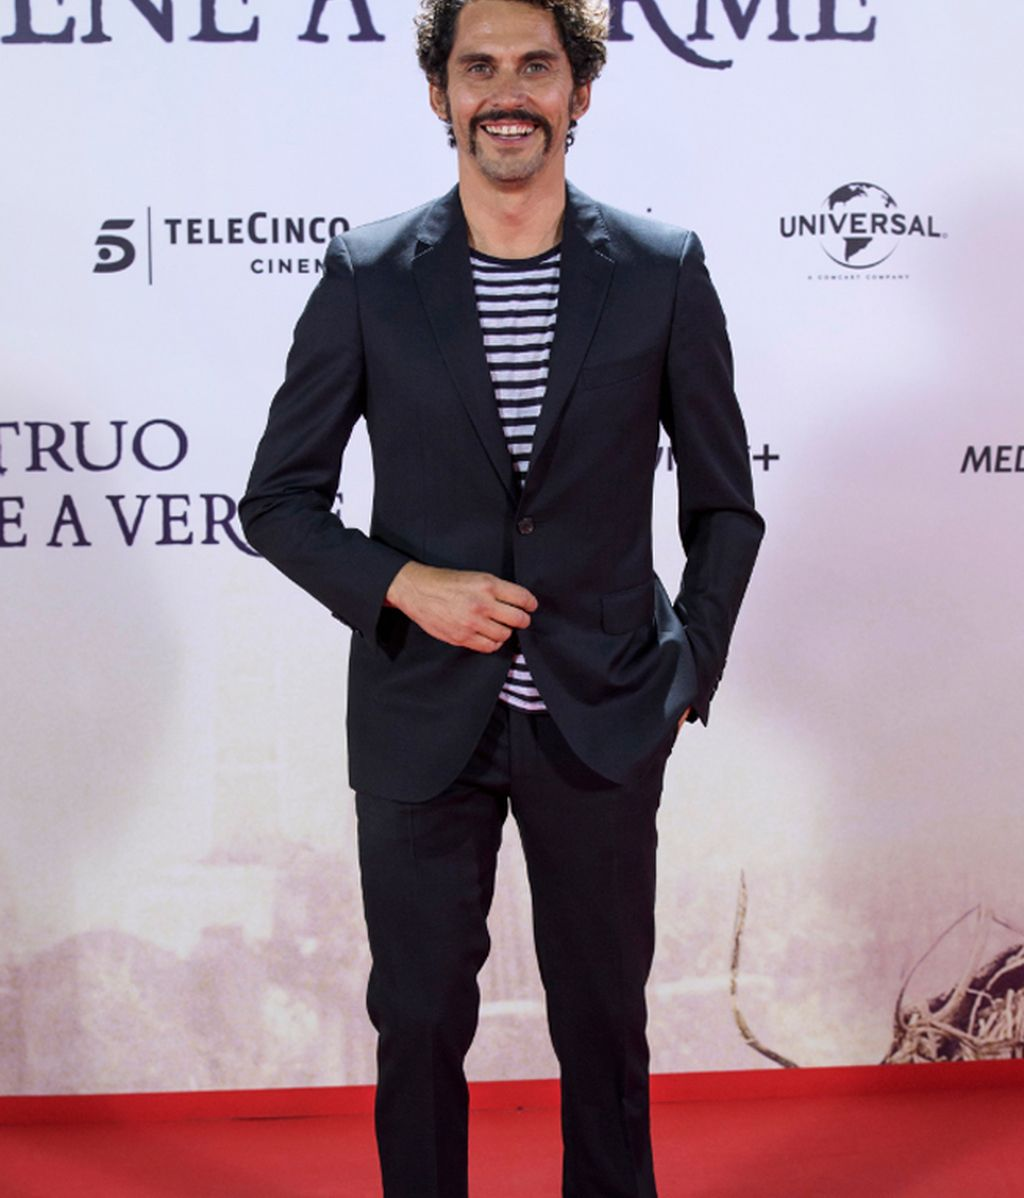 El director y actor Paco León